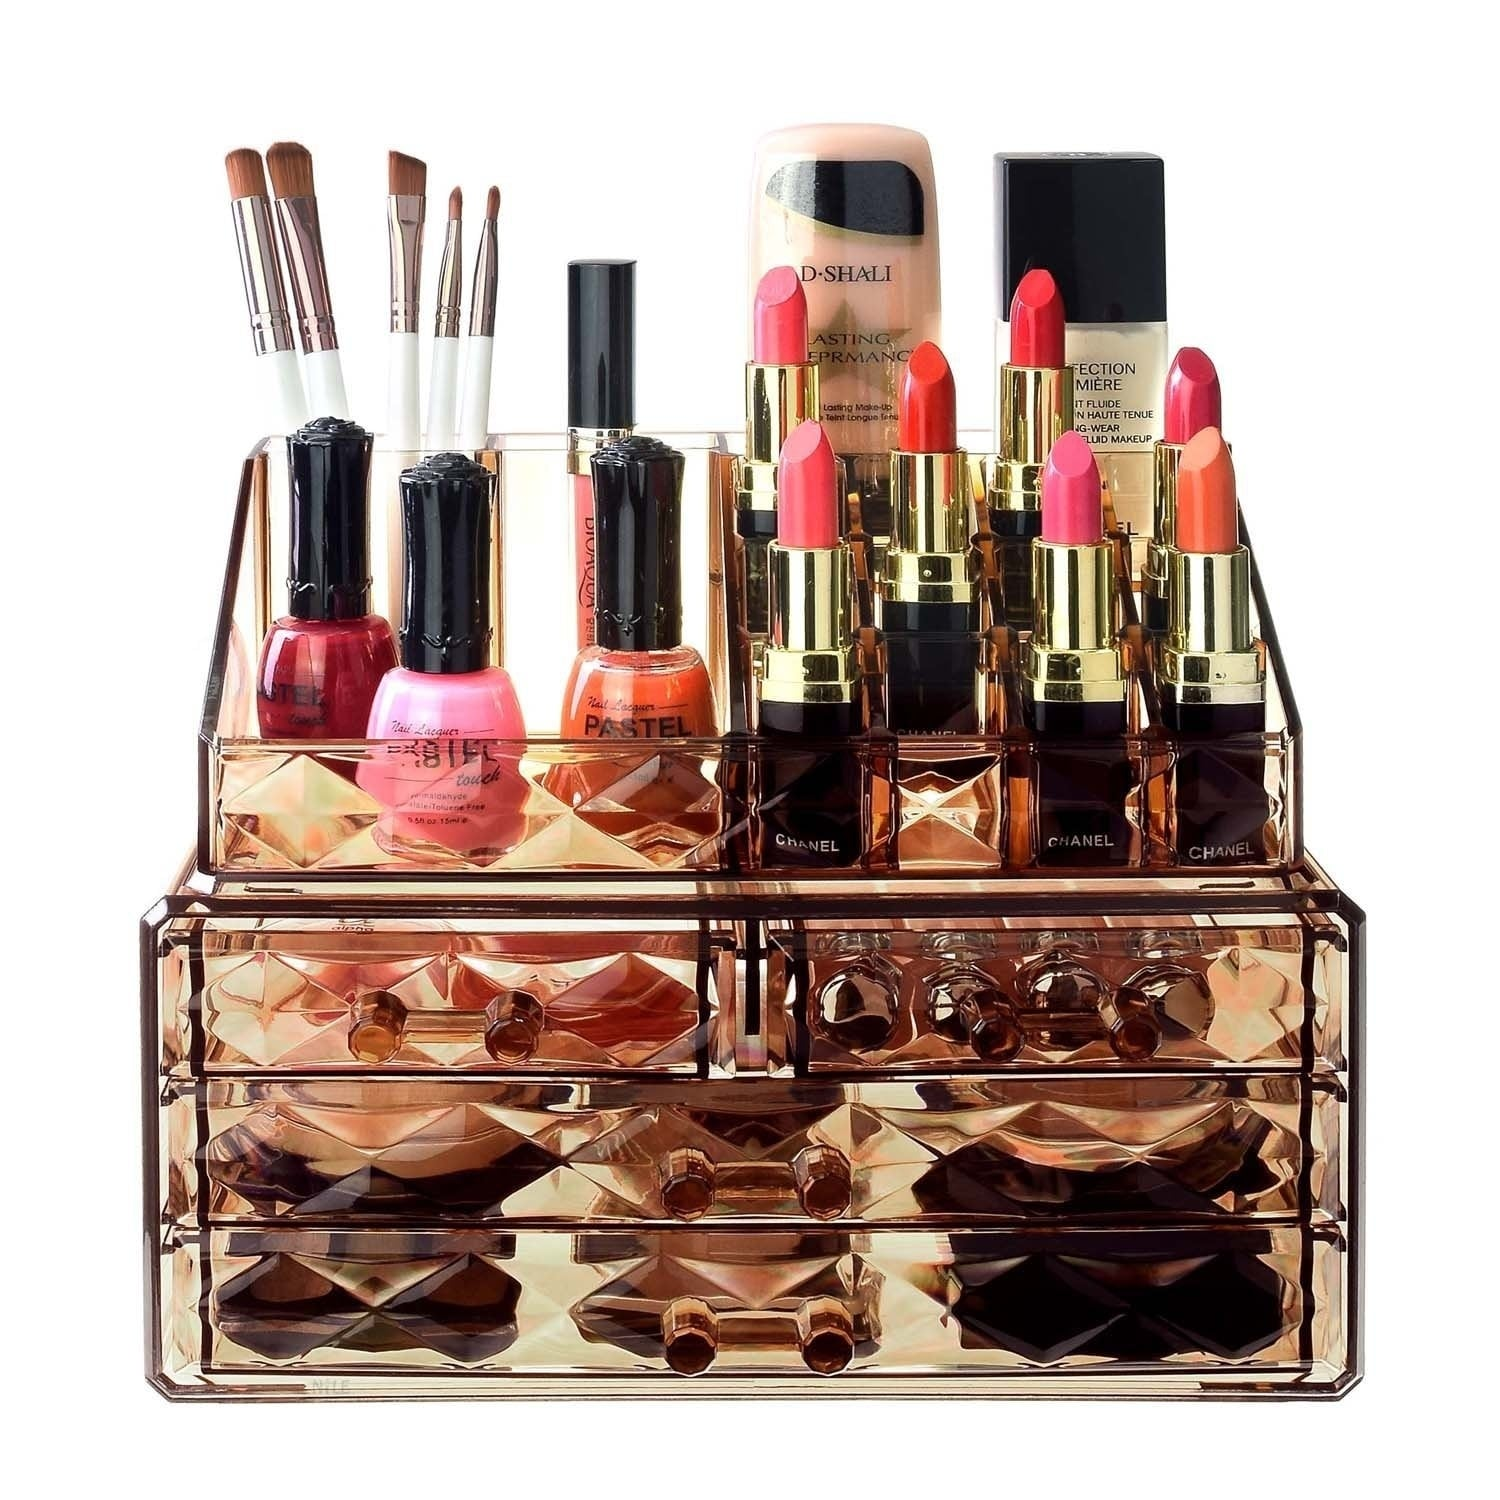 Ikee Design Jewelry And Makeup Organizer Two Pieces Set, Light